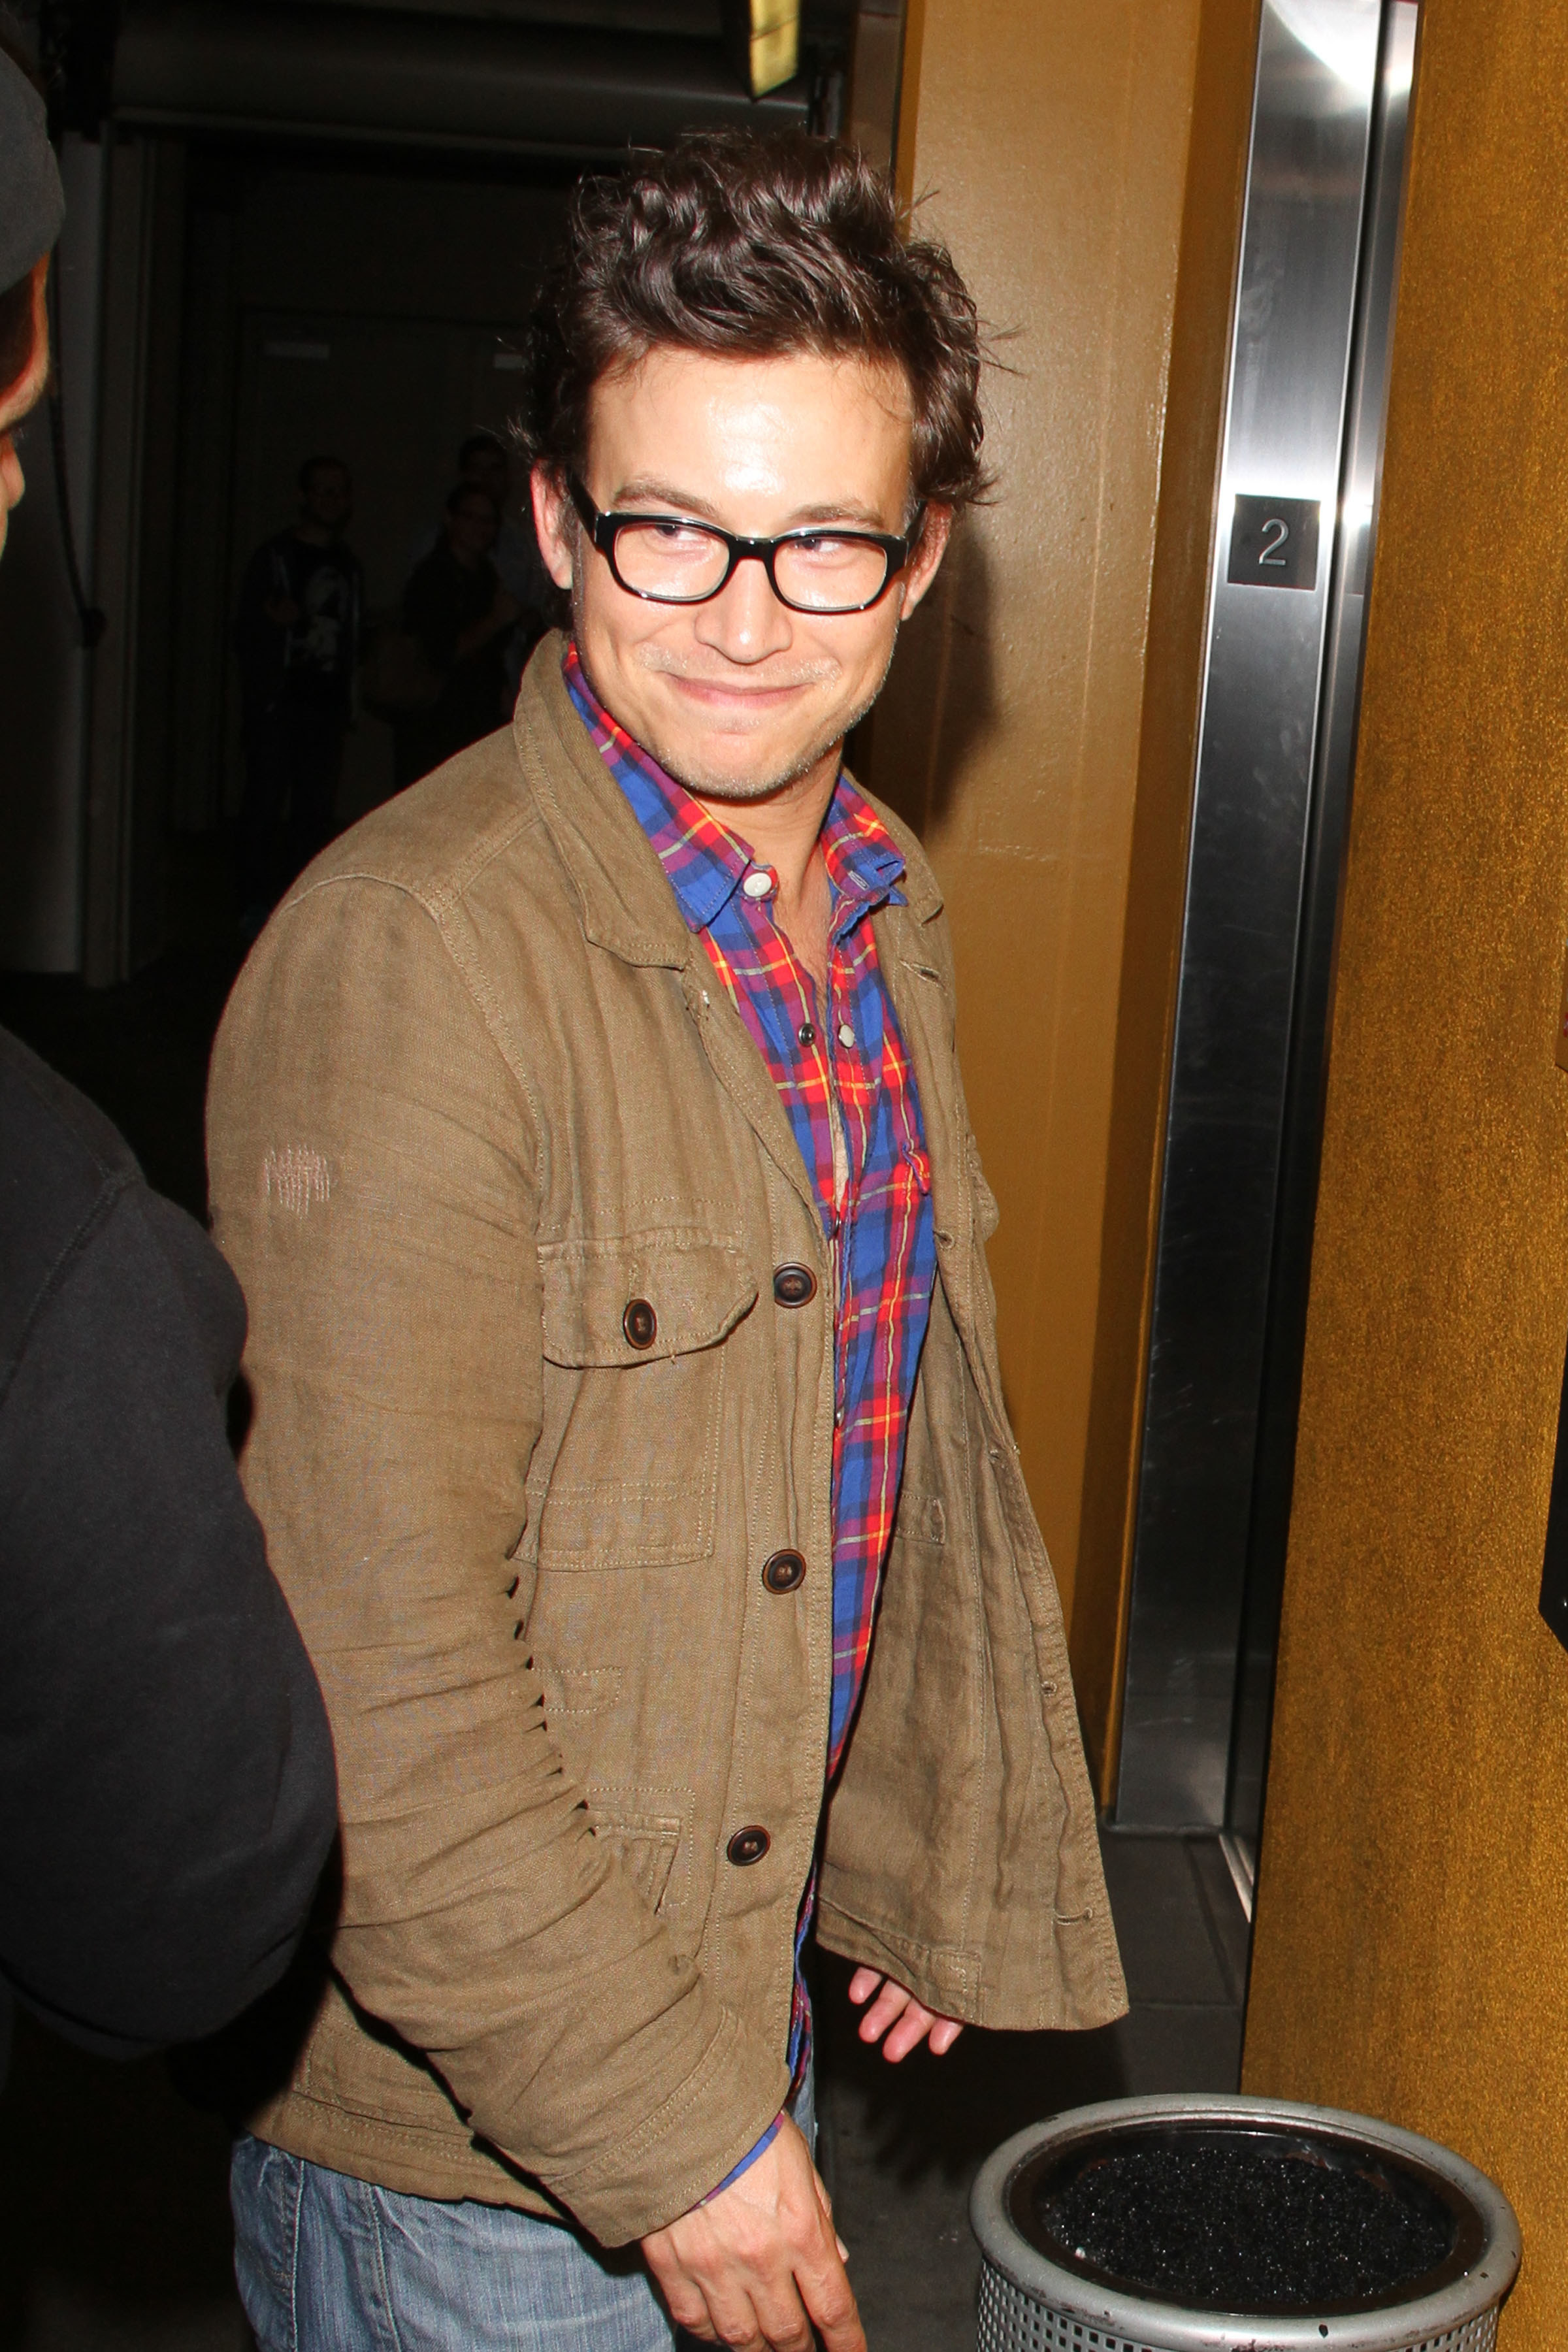 Actor Jonathan Taylor Thomas as seen on August 14, 2013 in Los Angeles, California